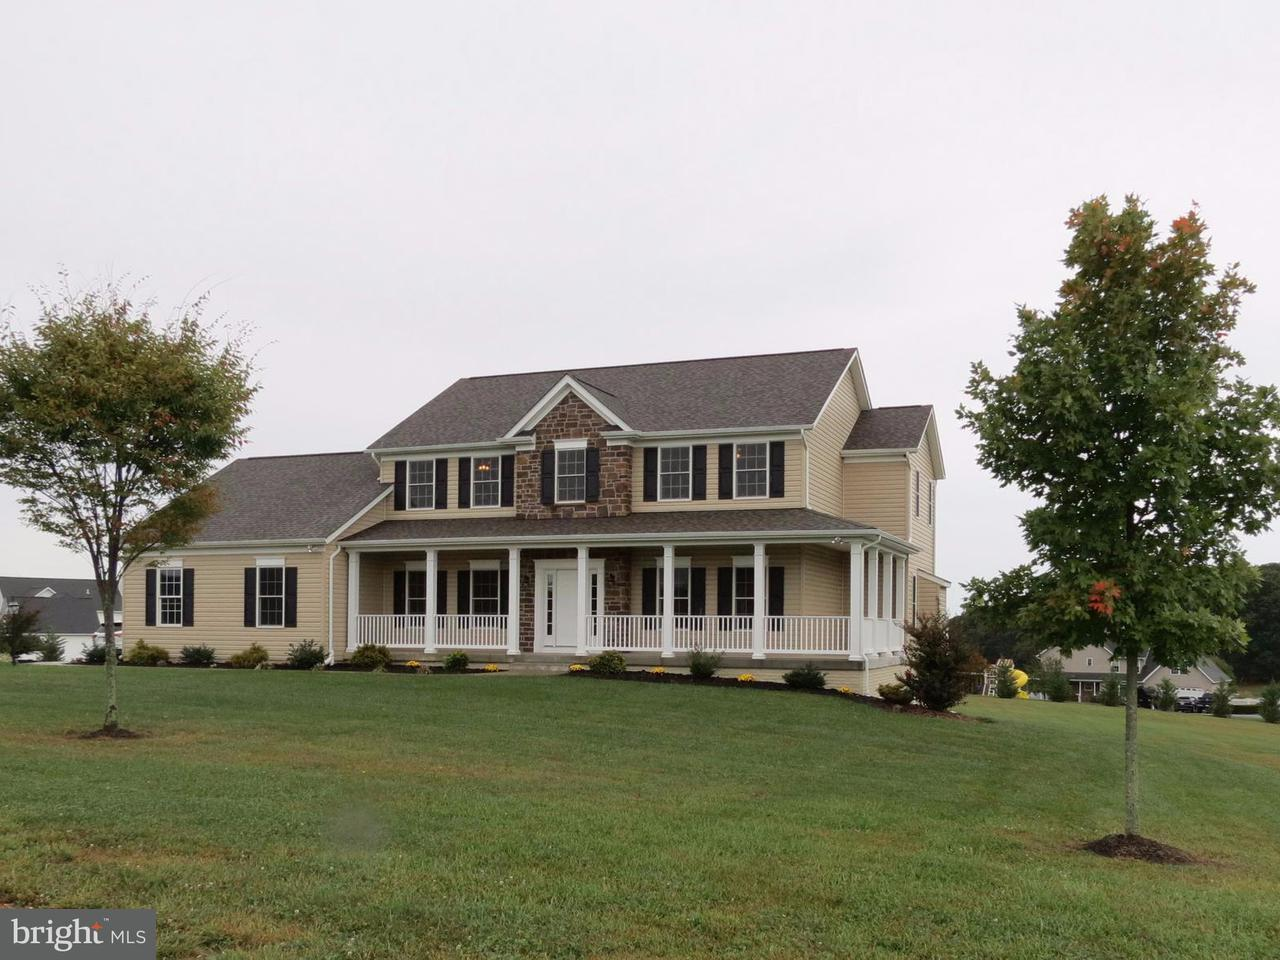 Vivienda unifamiliar por un Venta en 1590 QUIET MEADOW WAY 1590 QUIET MEADOW WAY Hampstead, Maryland 21074 Estados Unidos